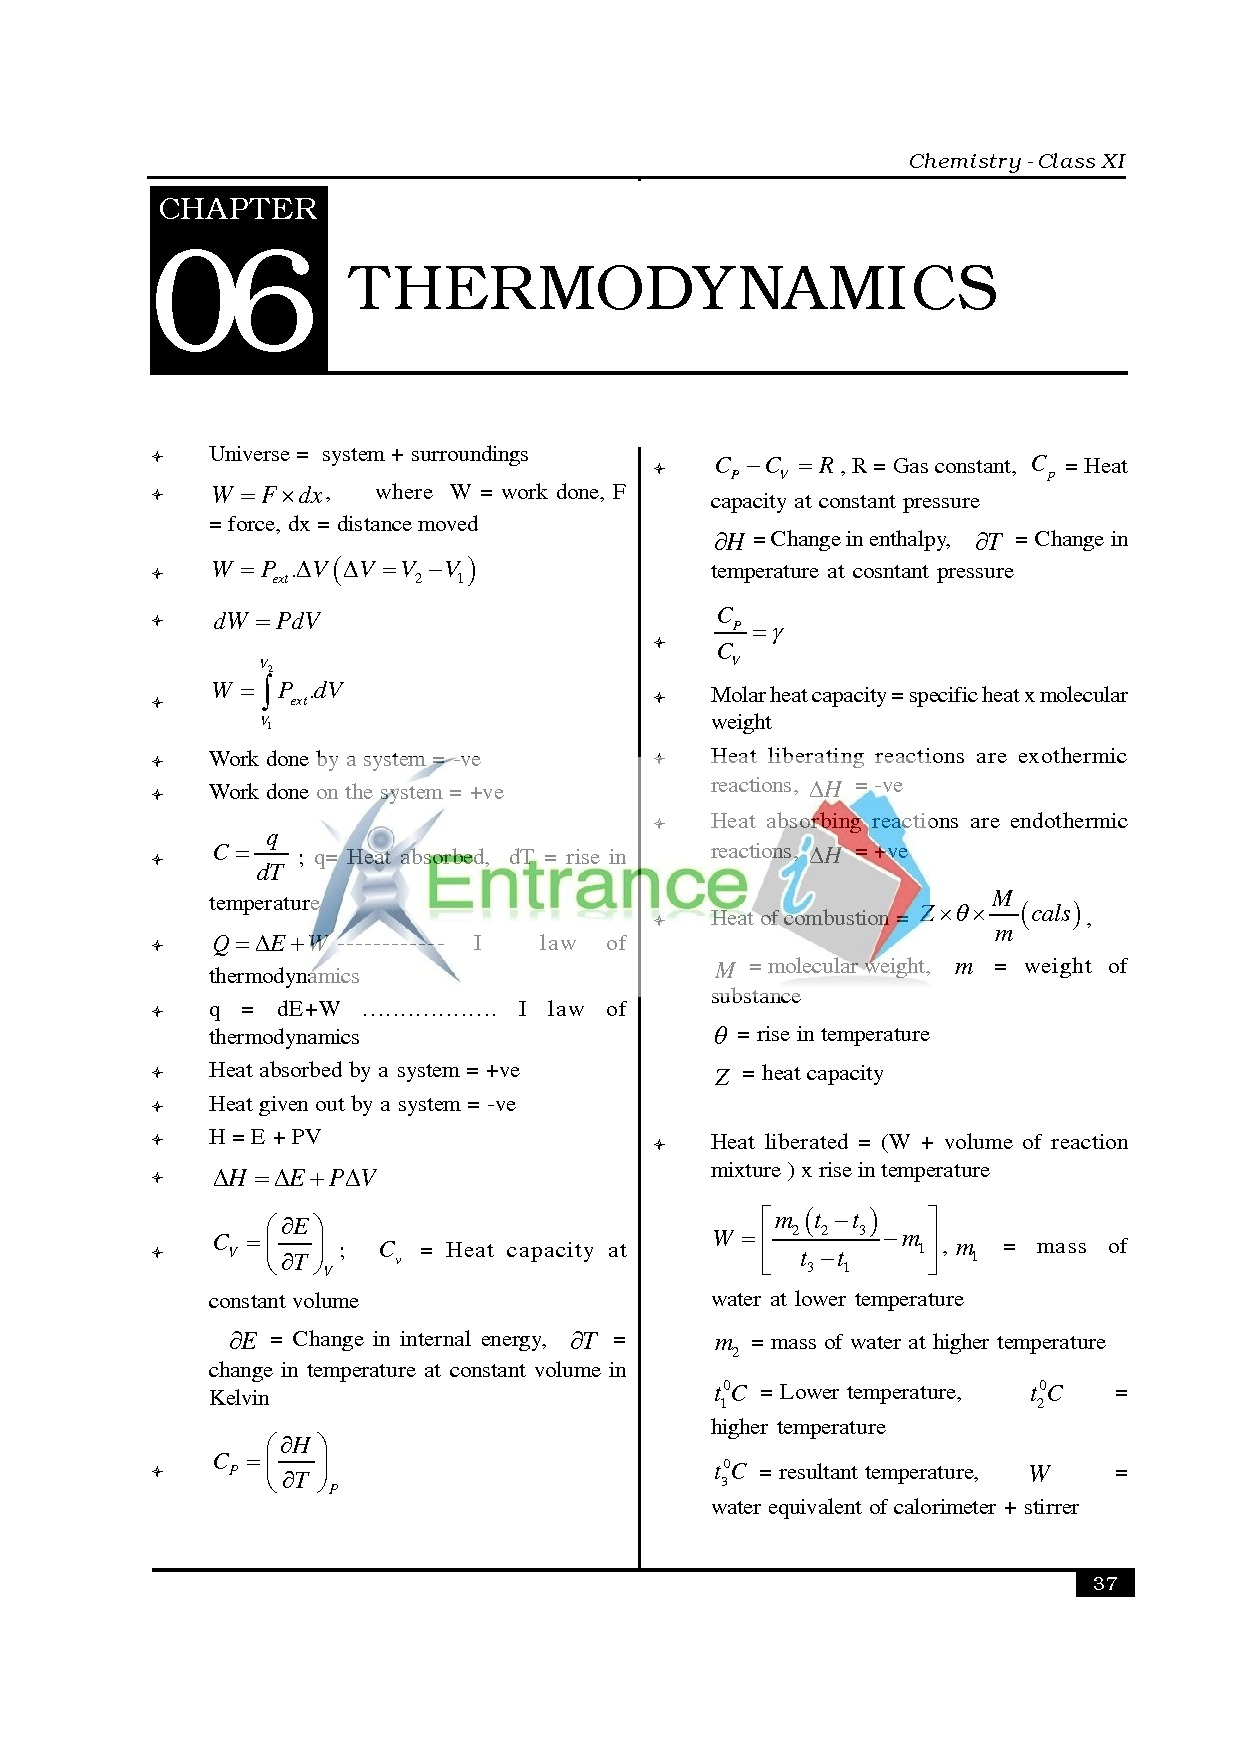 Chemistry formula for class 11 chapter- Thermodynamics ...